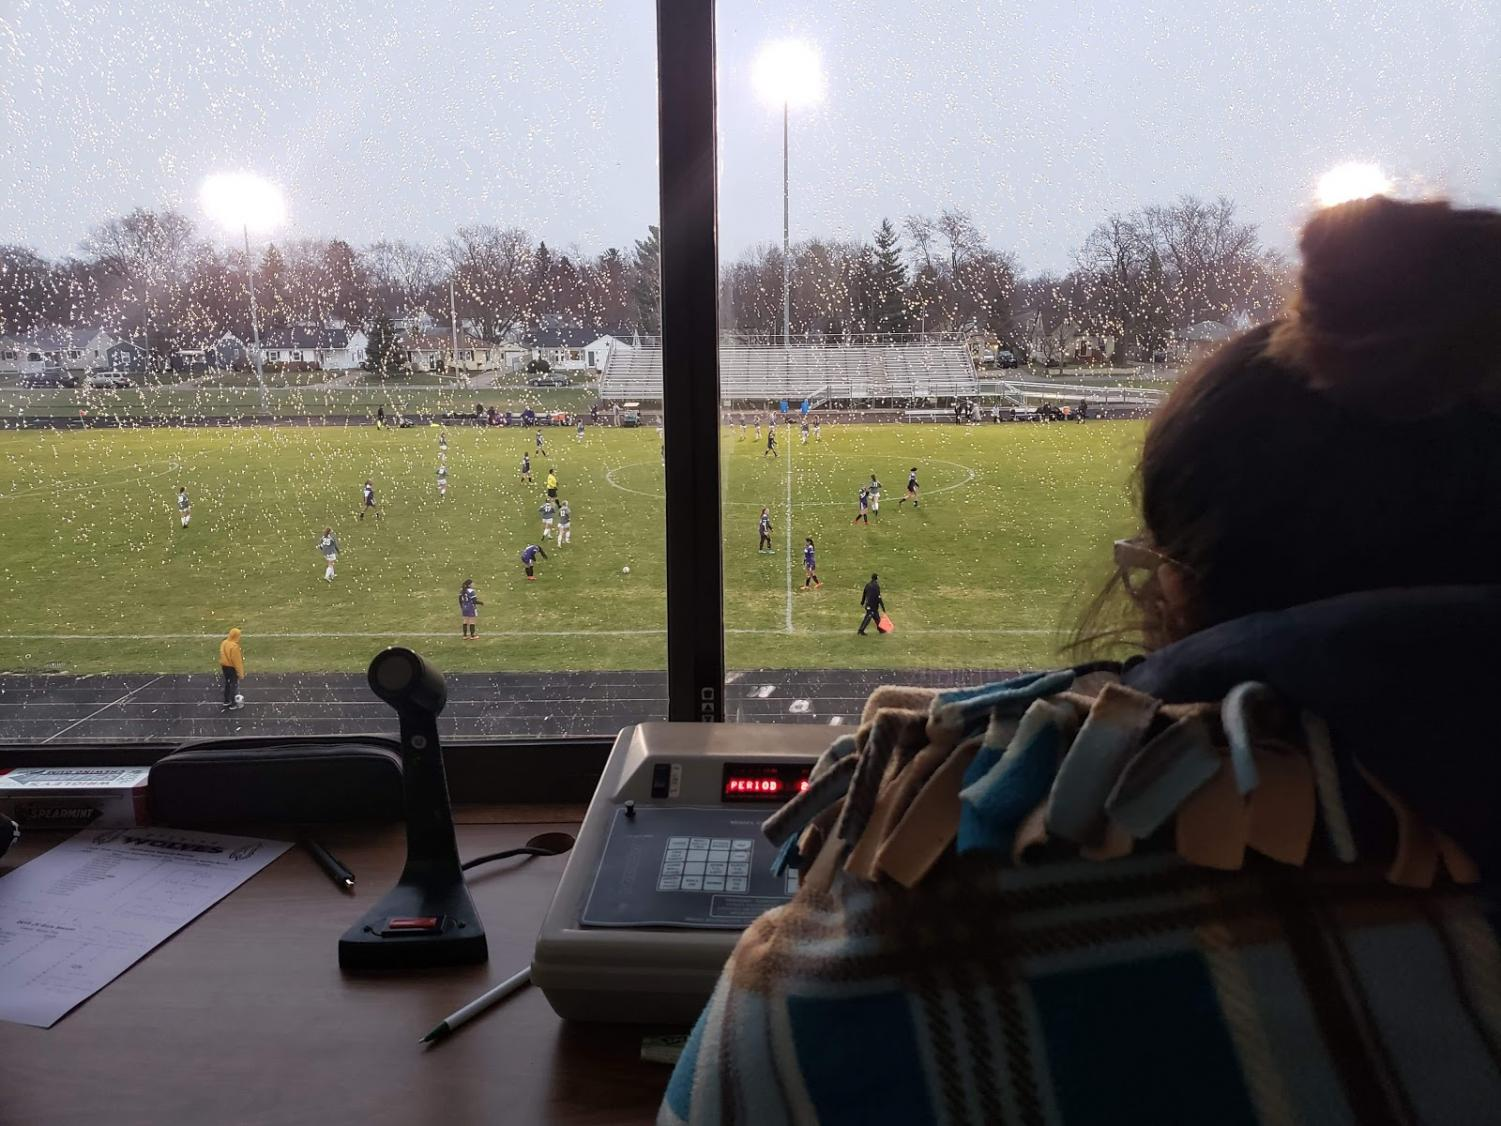 An overall picture with a close up of the scorekeeper and in the background the varsity game taking place.